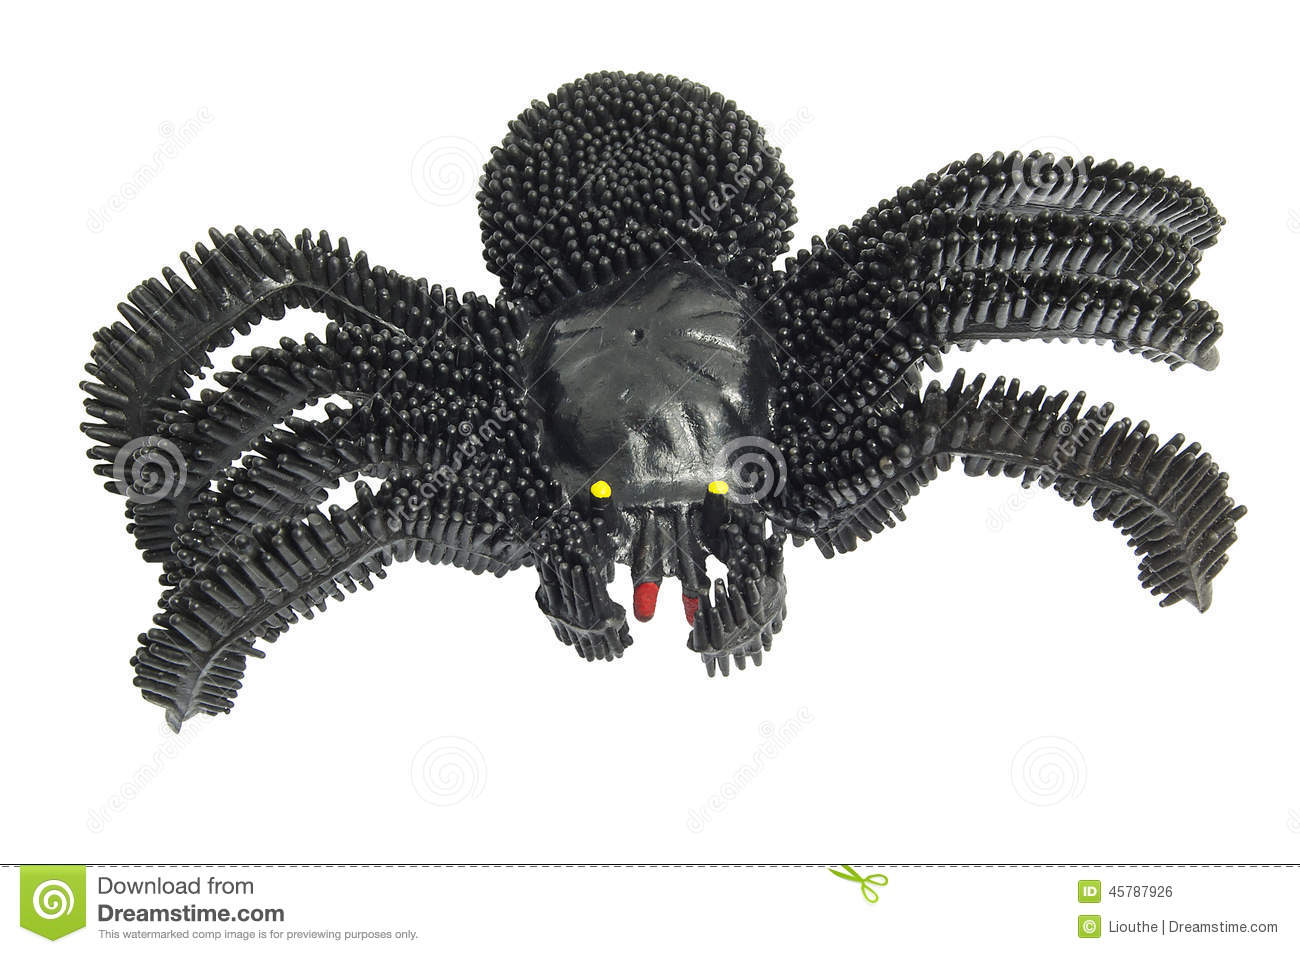 Rubber Toy Spider Stock Photo Image 45787926